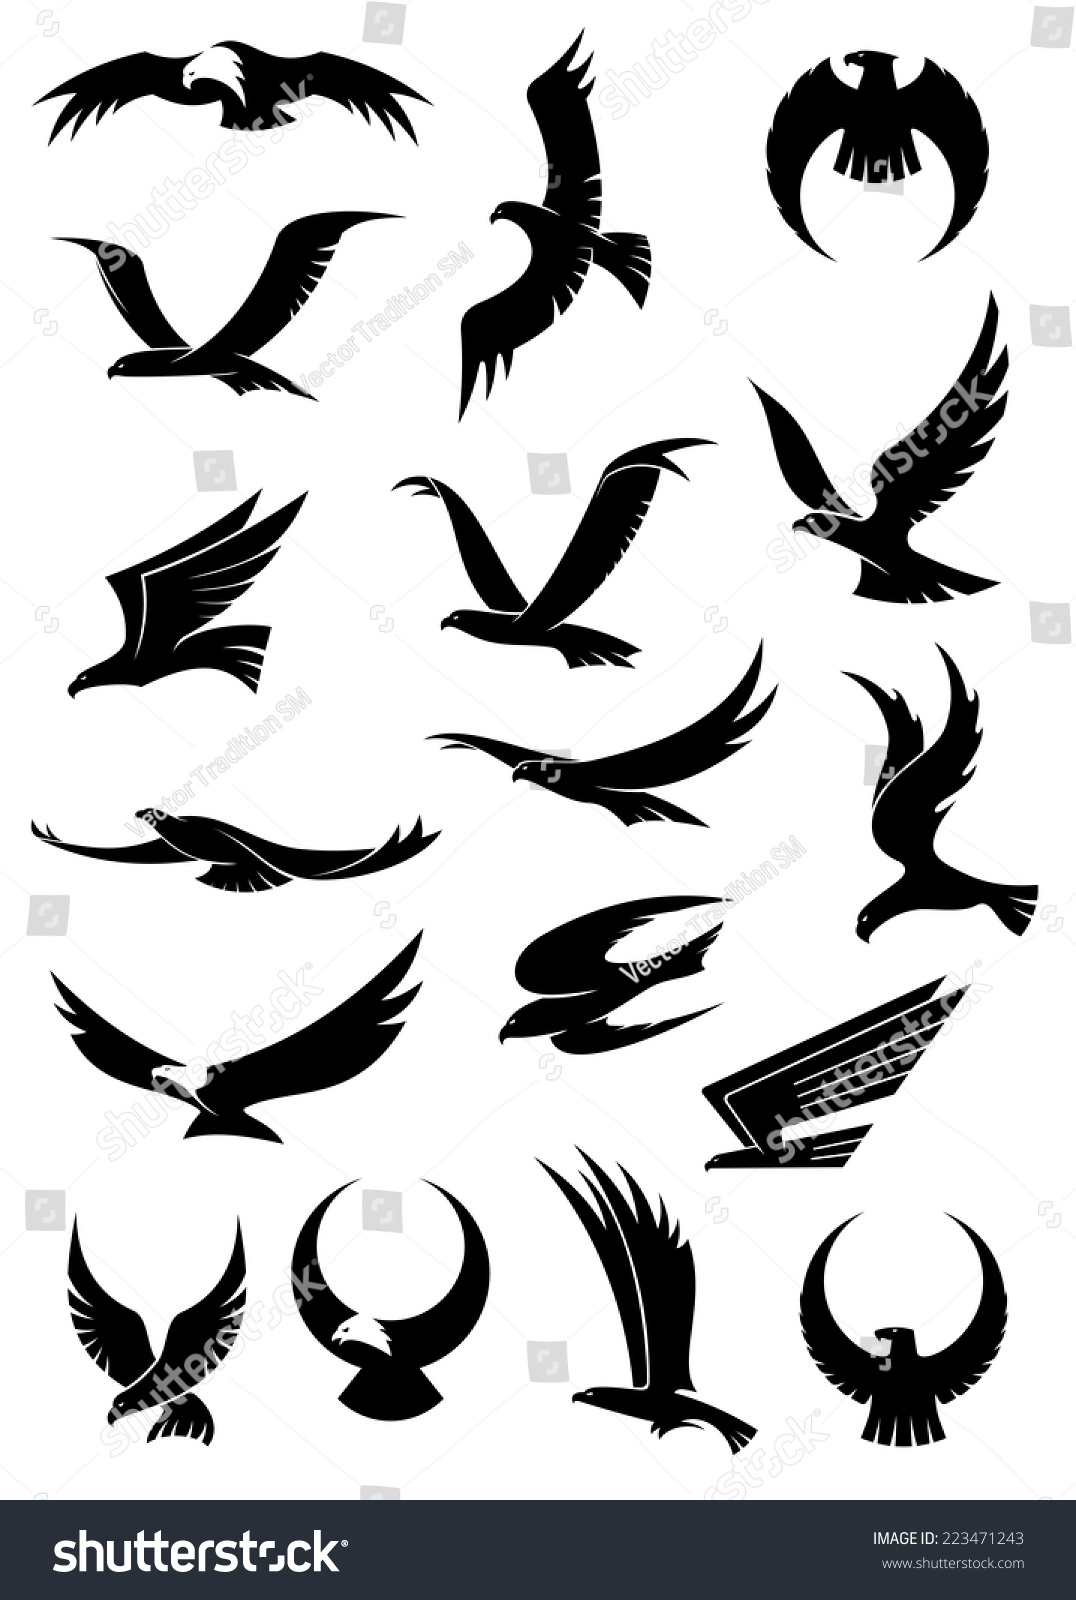 Different Positions Showing - Love With Woman Flying Hawk Silhouette Vector